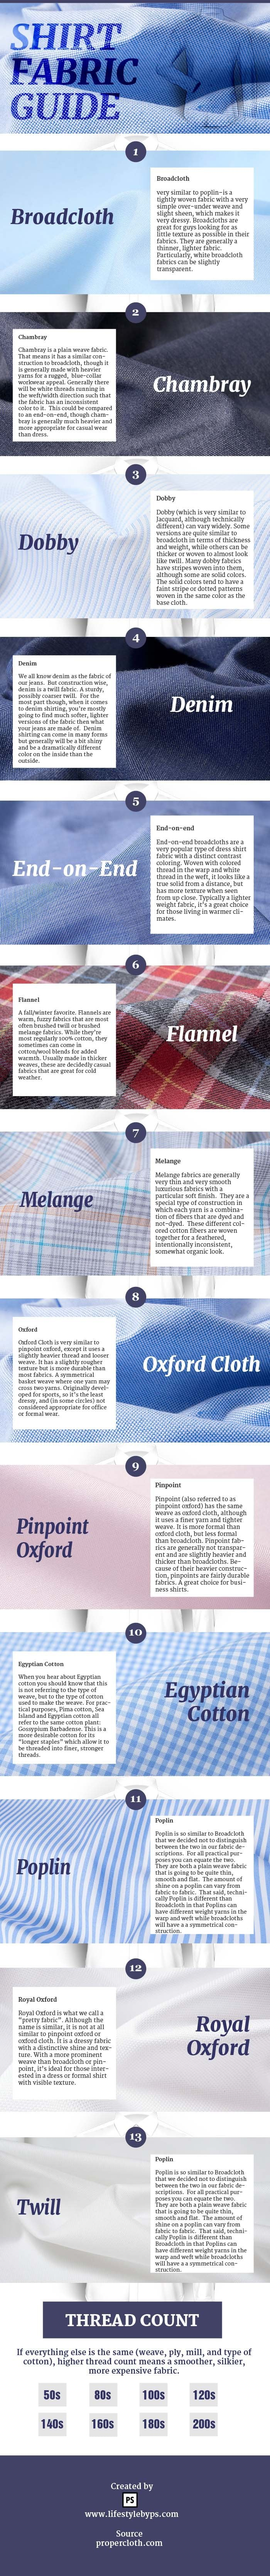 Shirt fabric infographic